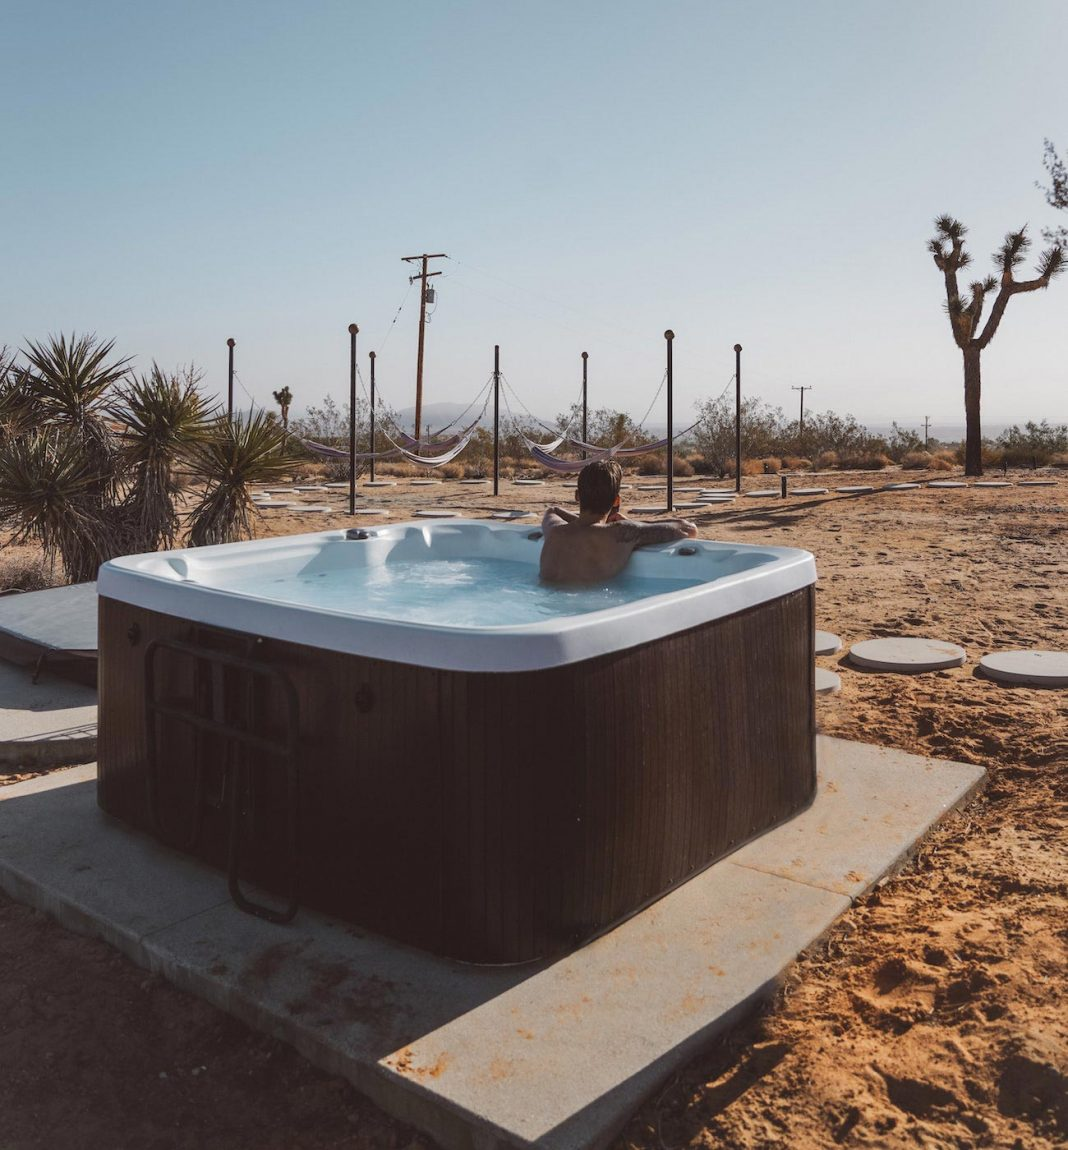 Smart ways to integrate an inflatable hot tub into your backyard design